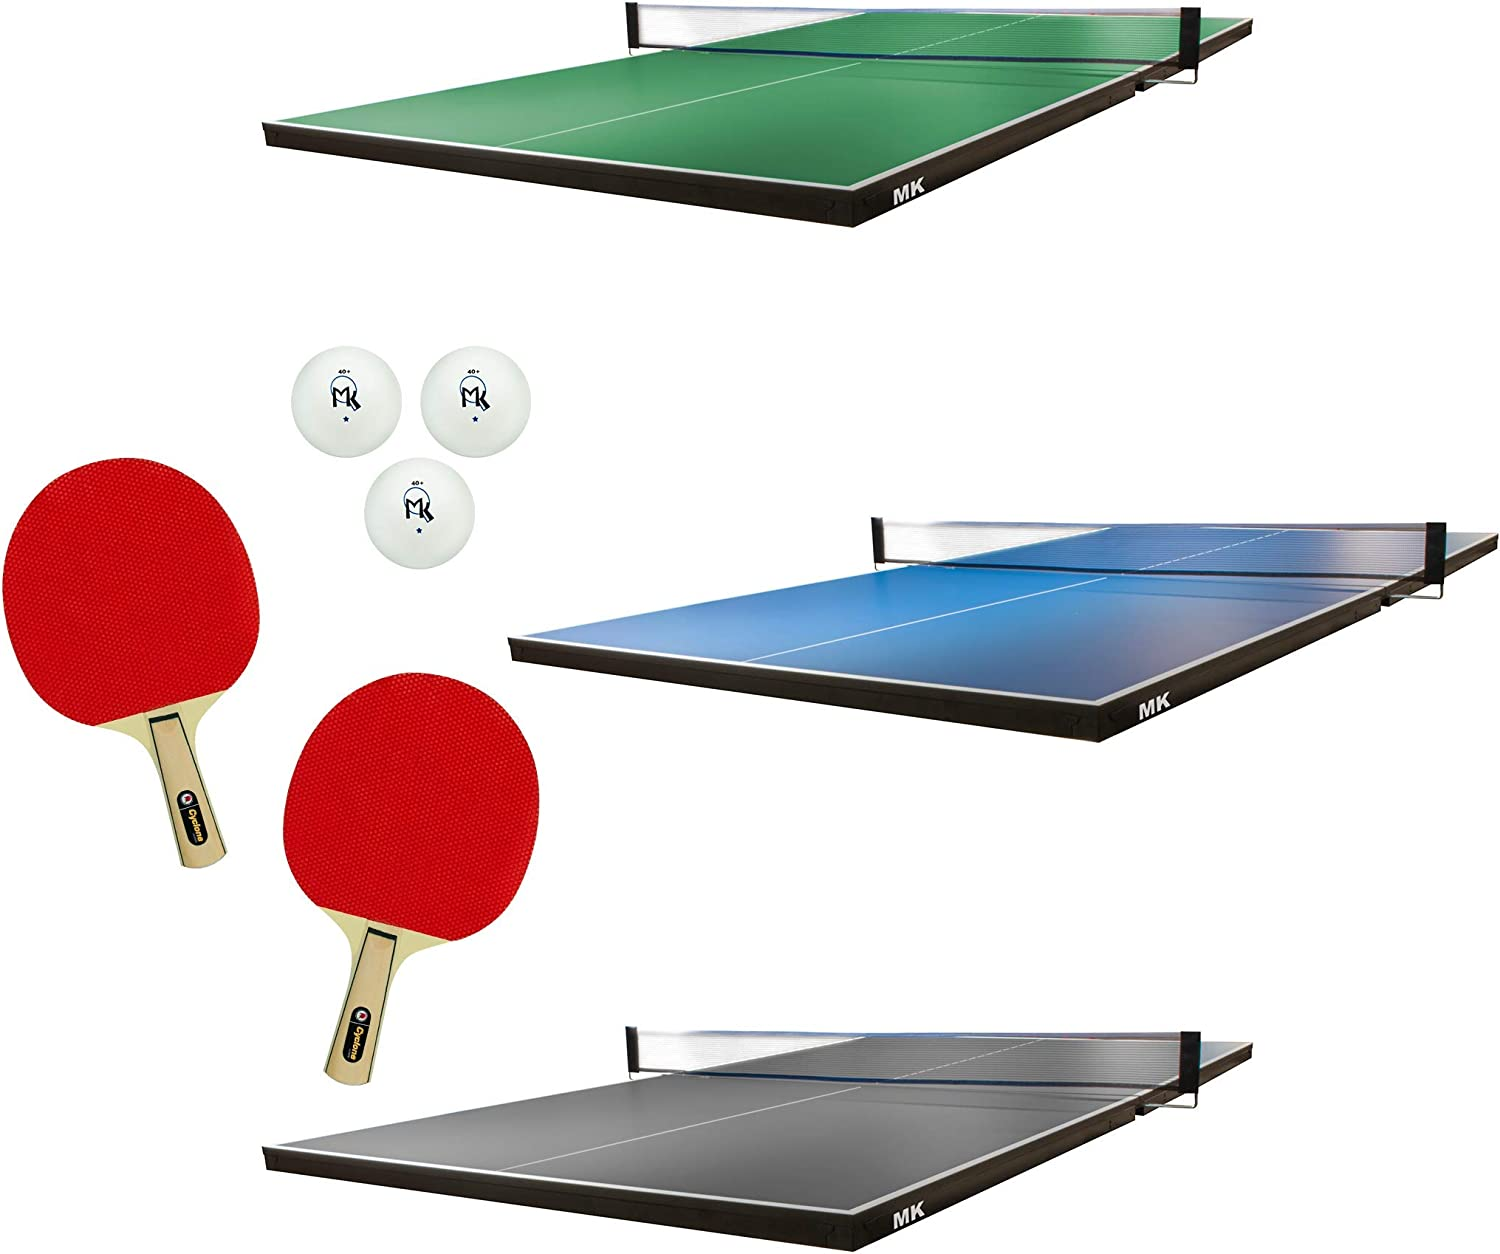 Martin Kilpatrick Ping Pong Billiard Popular Reservation brand for Table Conversio